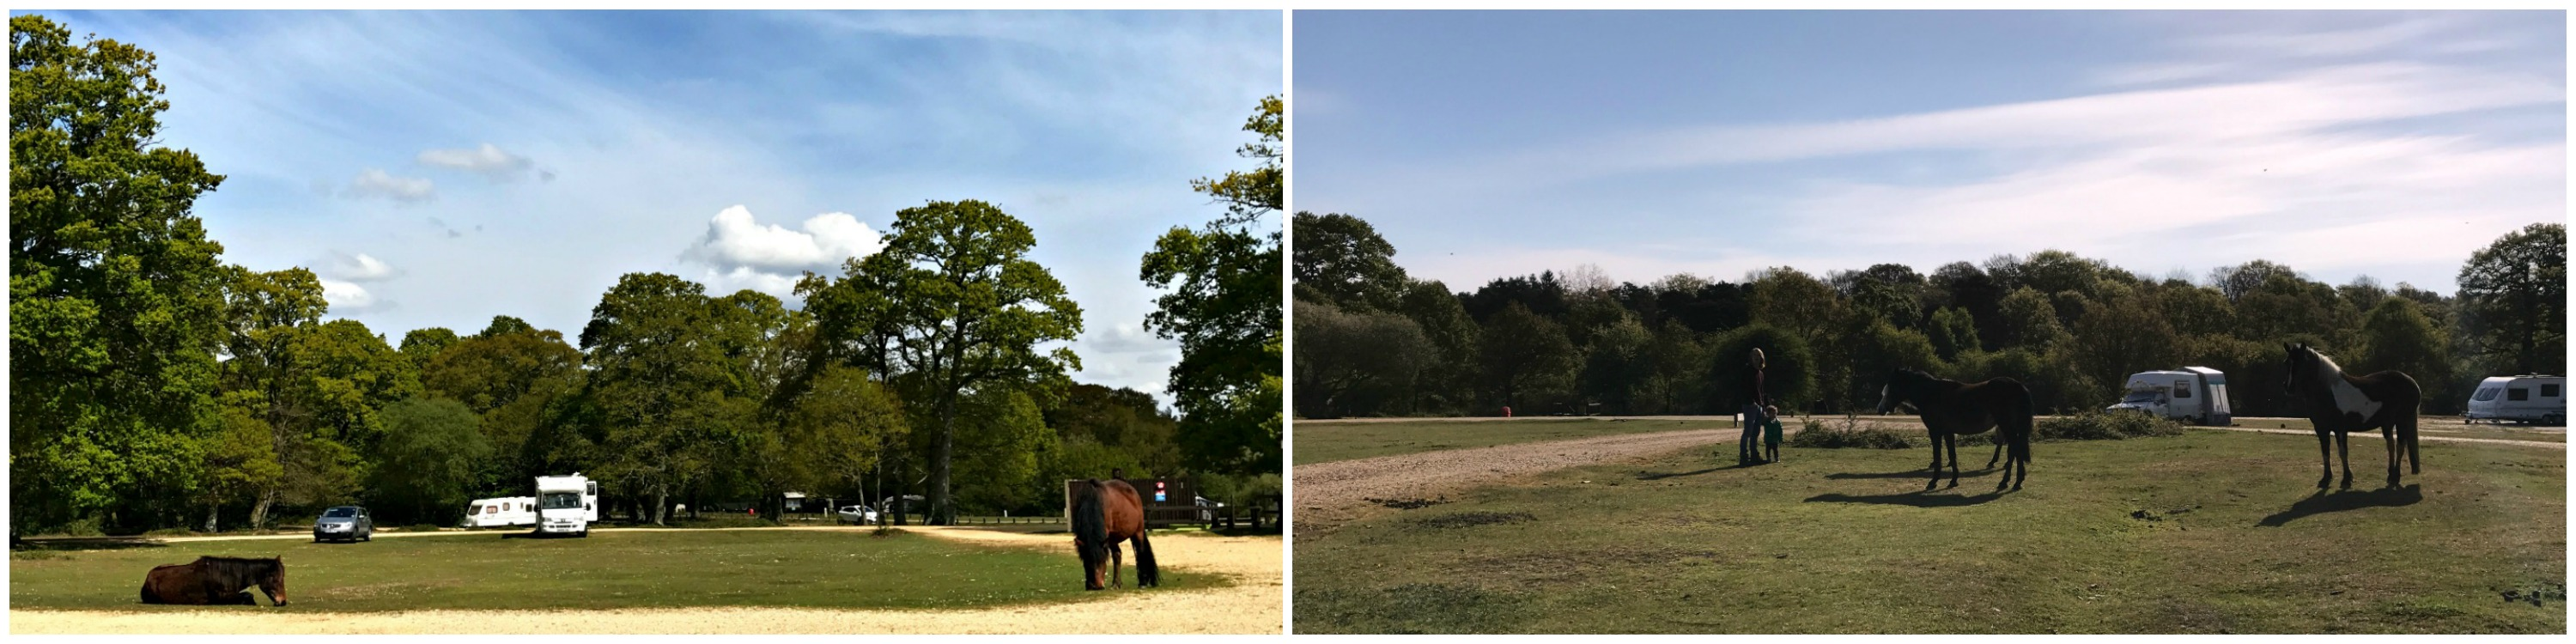 new forest camping horses